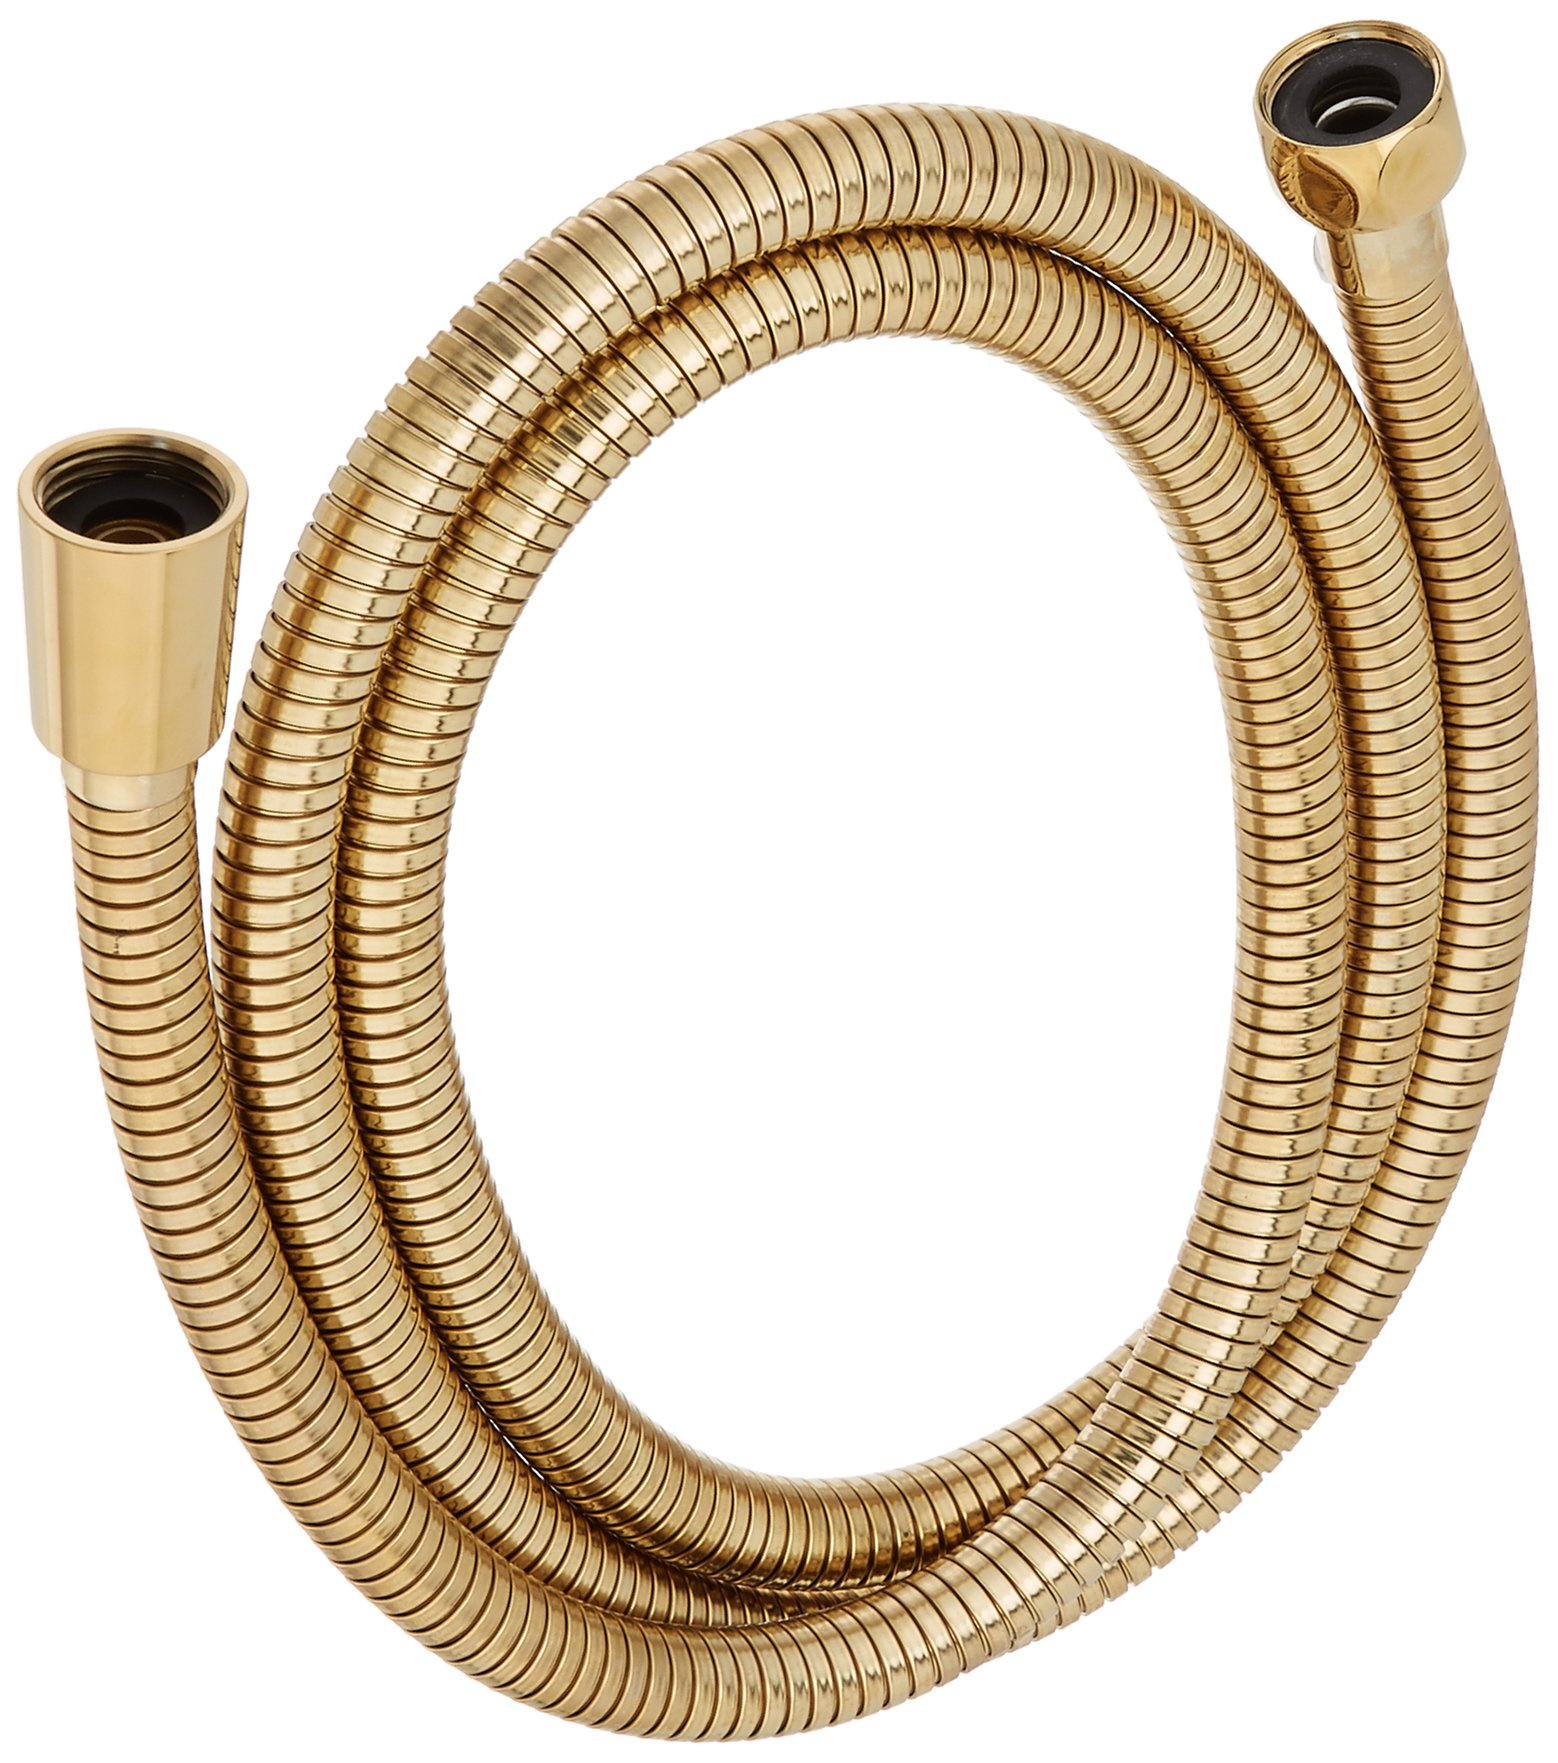 Delta Faucet U495D-PB60-PK Stretchable Metal Hose, Polished Brass by DELTA FAUCET